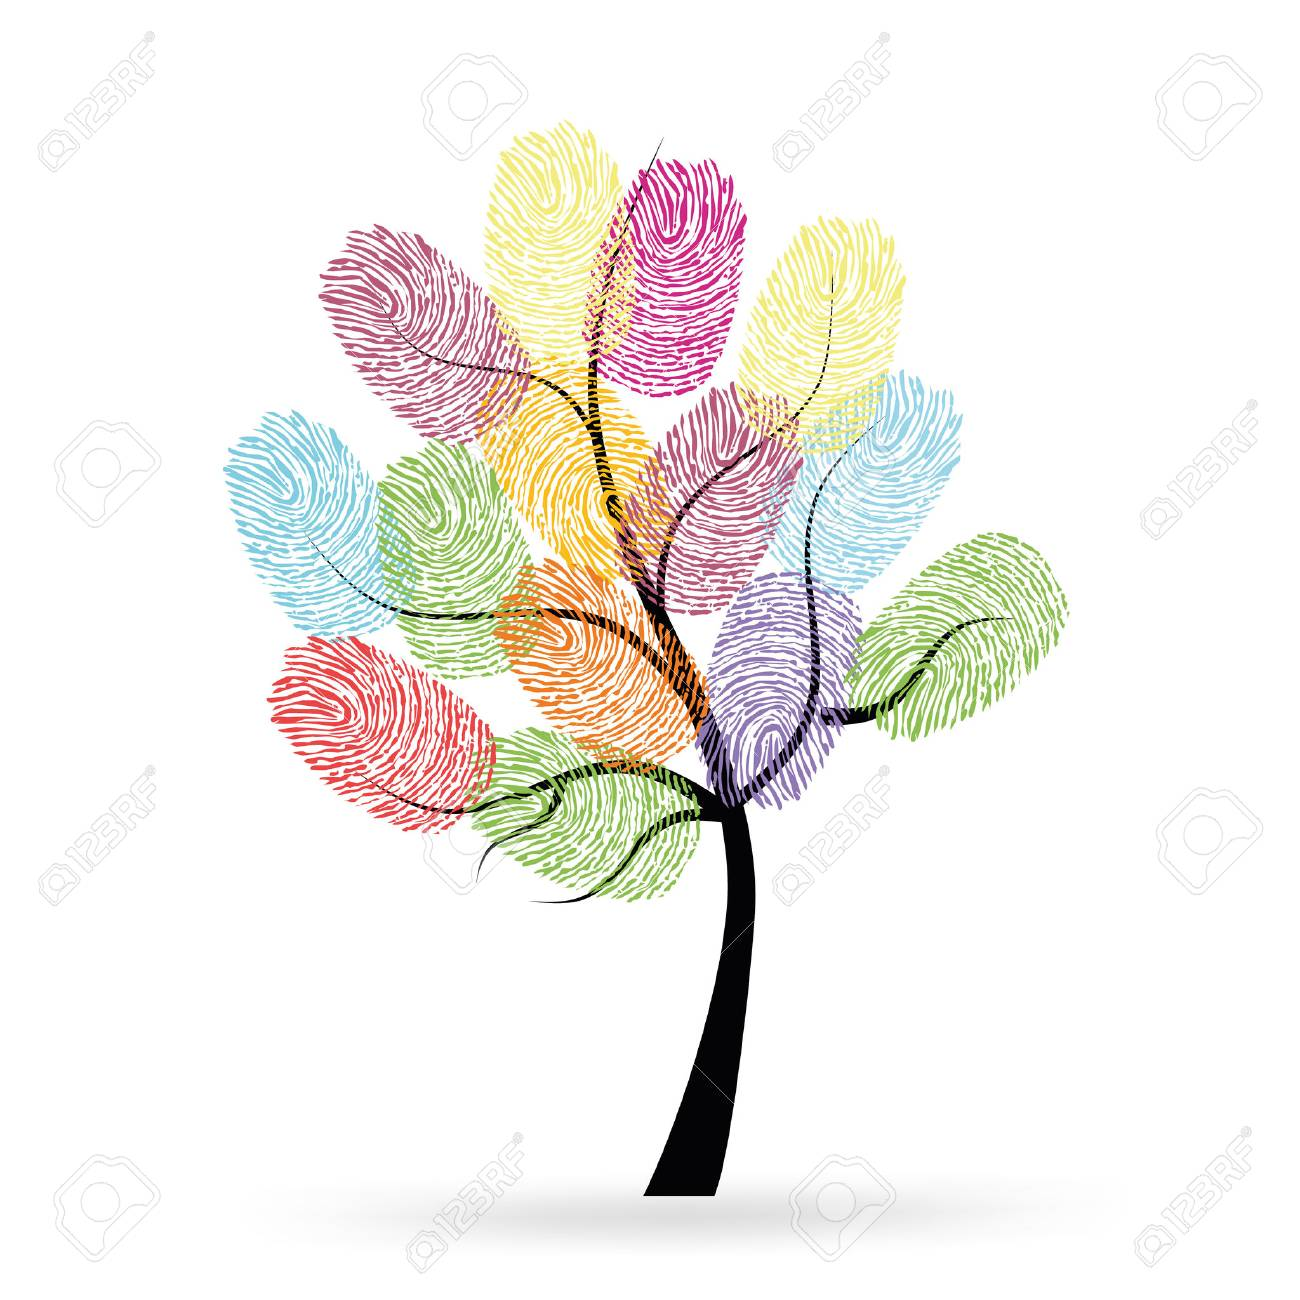 Tree with colorful finger prints - 42707577